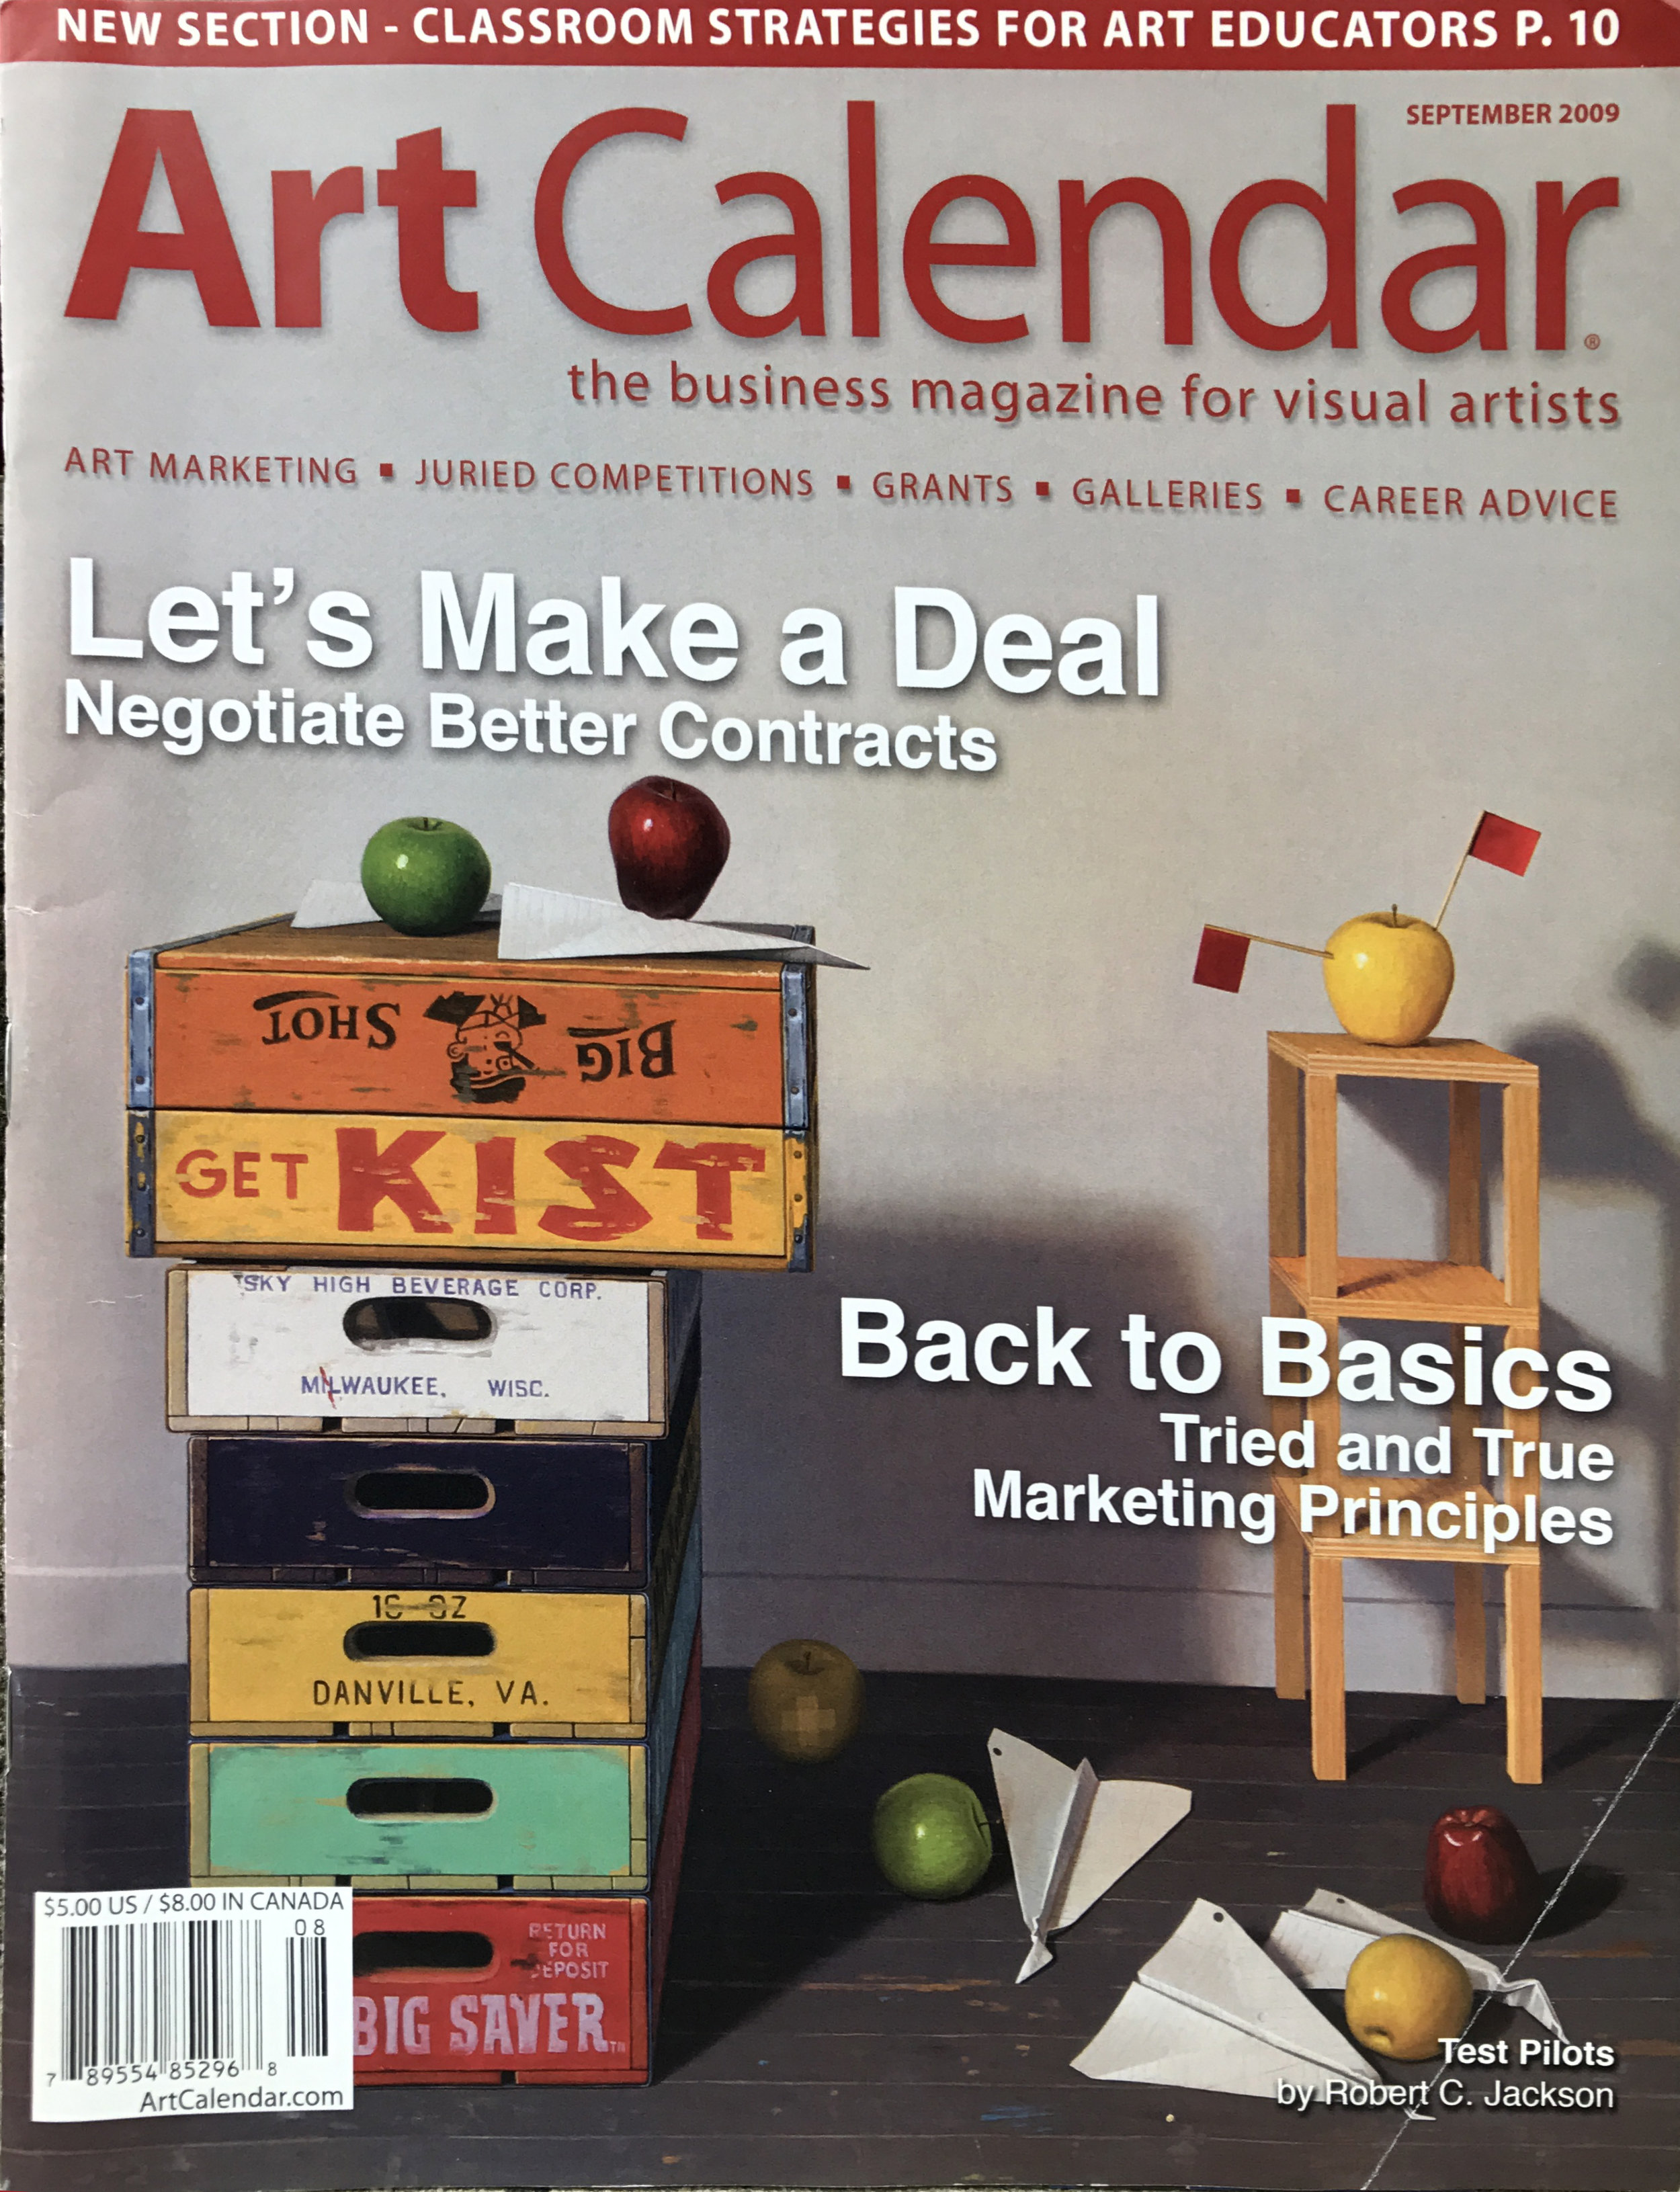 Art Calendar The Business Magazine for Visual Artists